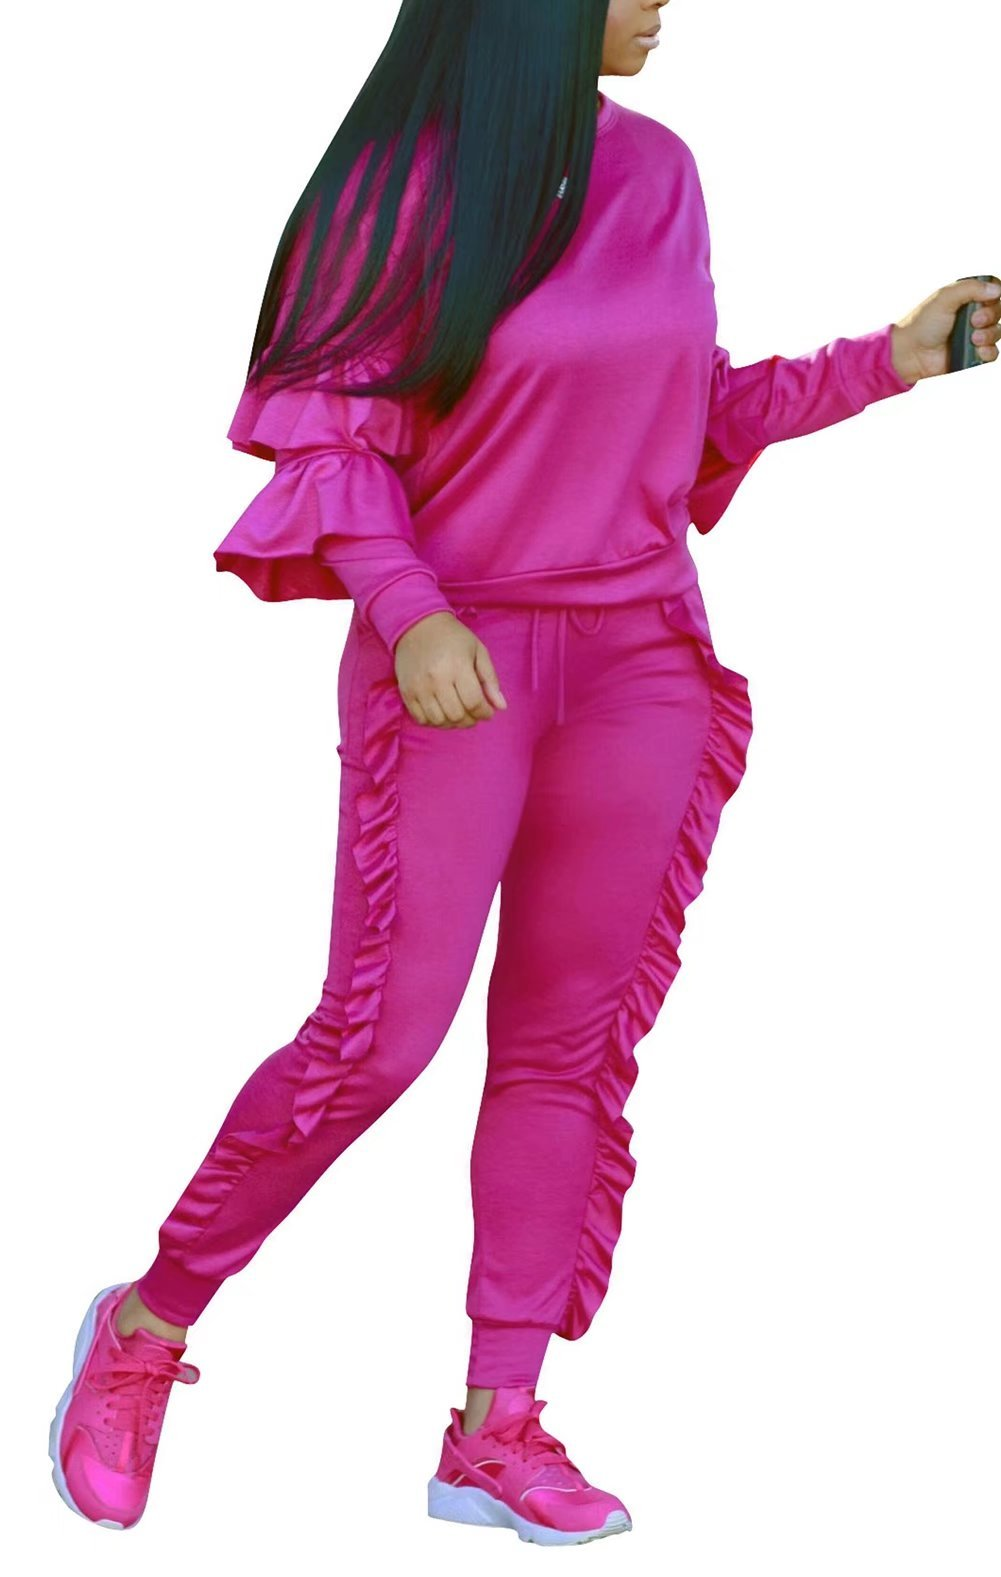 FOUNDO Women's Tracksuit Peplum Long Sleeve Tops and Ruffle Sweatpants 2 Pcs Set Rose M